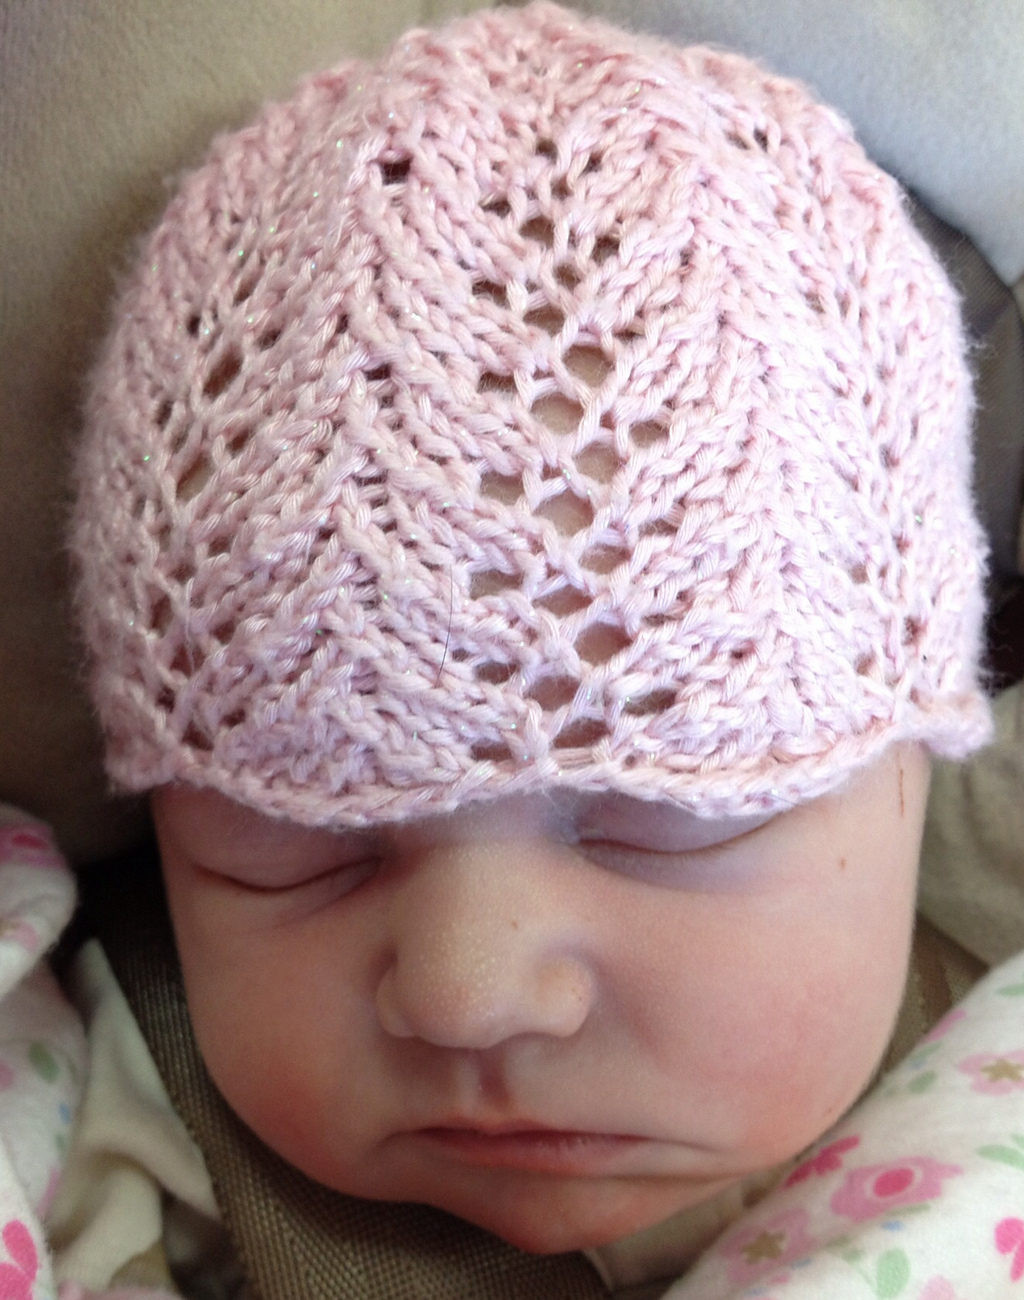 Baby Hat Knitting Pattern Lovely Baby Hat Knitting Patterns Of New 44 Pictures Baby Hat Knitting Pattern